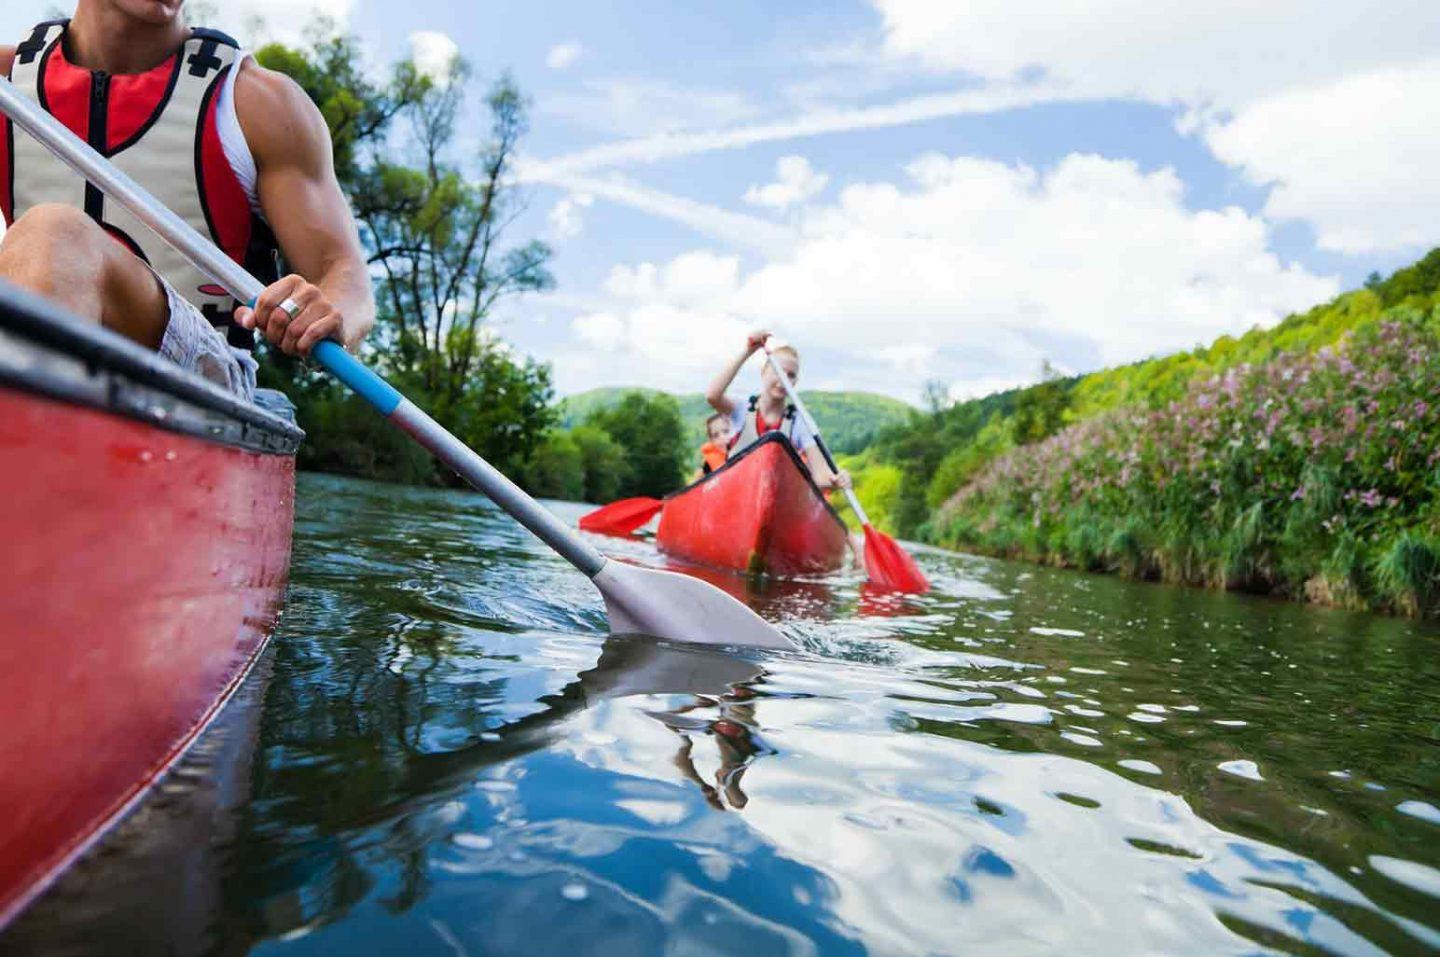 Useful Kayaking Tips and Tricks From the Experts